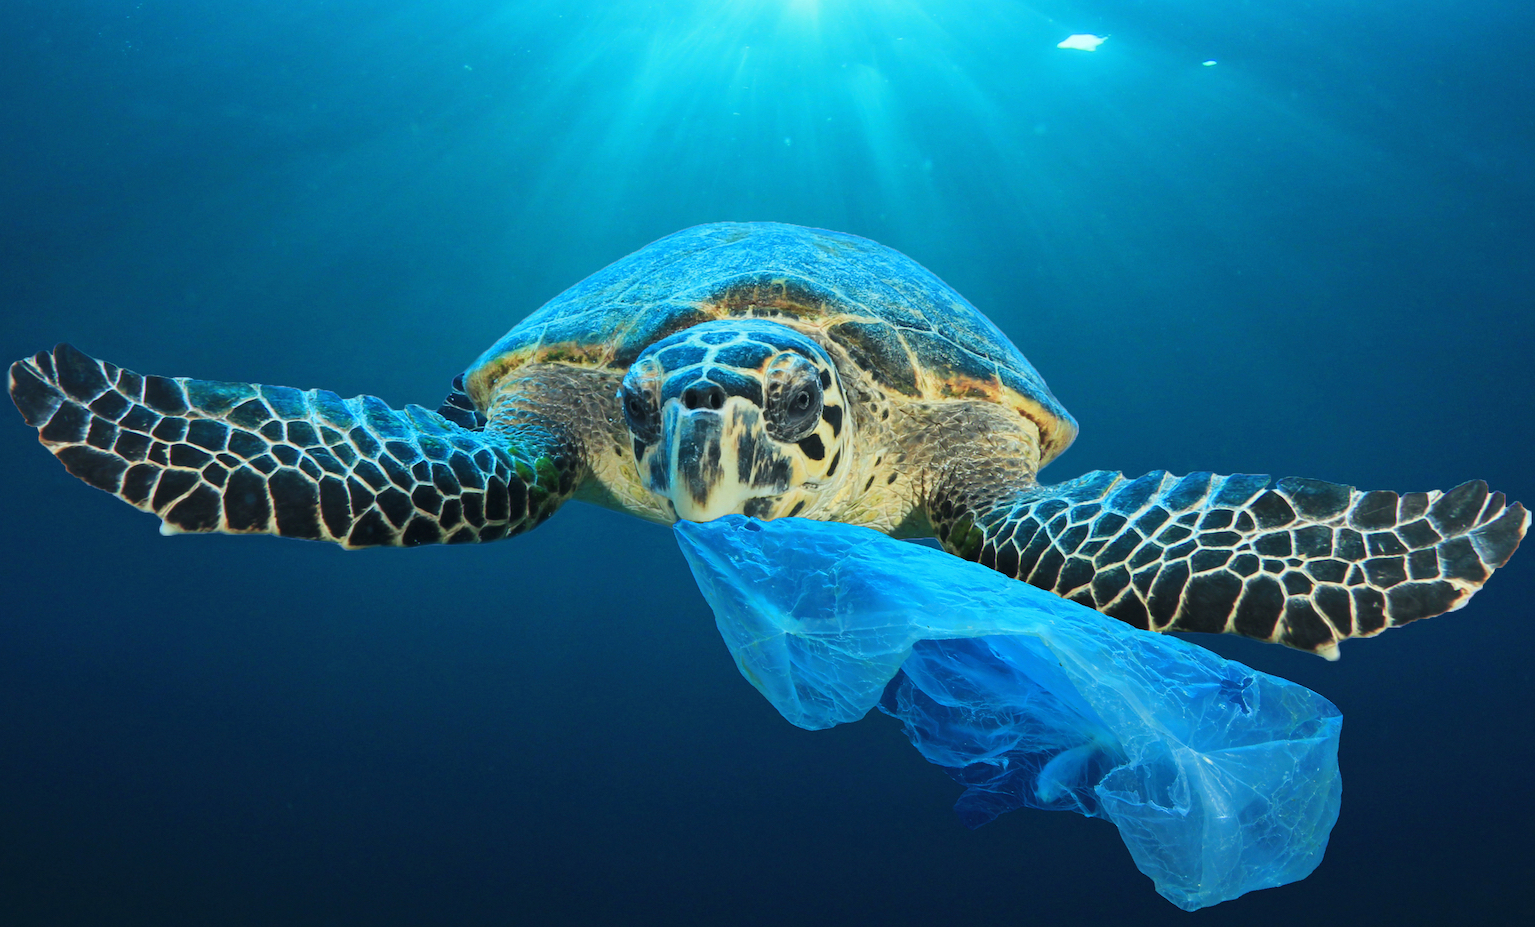 The United Nations (UN) released a report that found that less than one-tenth of all the world's plastic has been recycled and calls for immediate government intervention to ban or tax single-use plastic bags and food packaging.